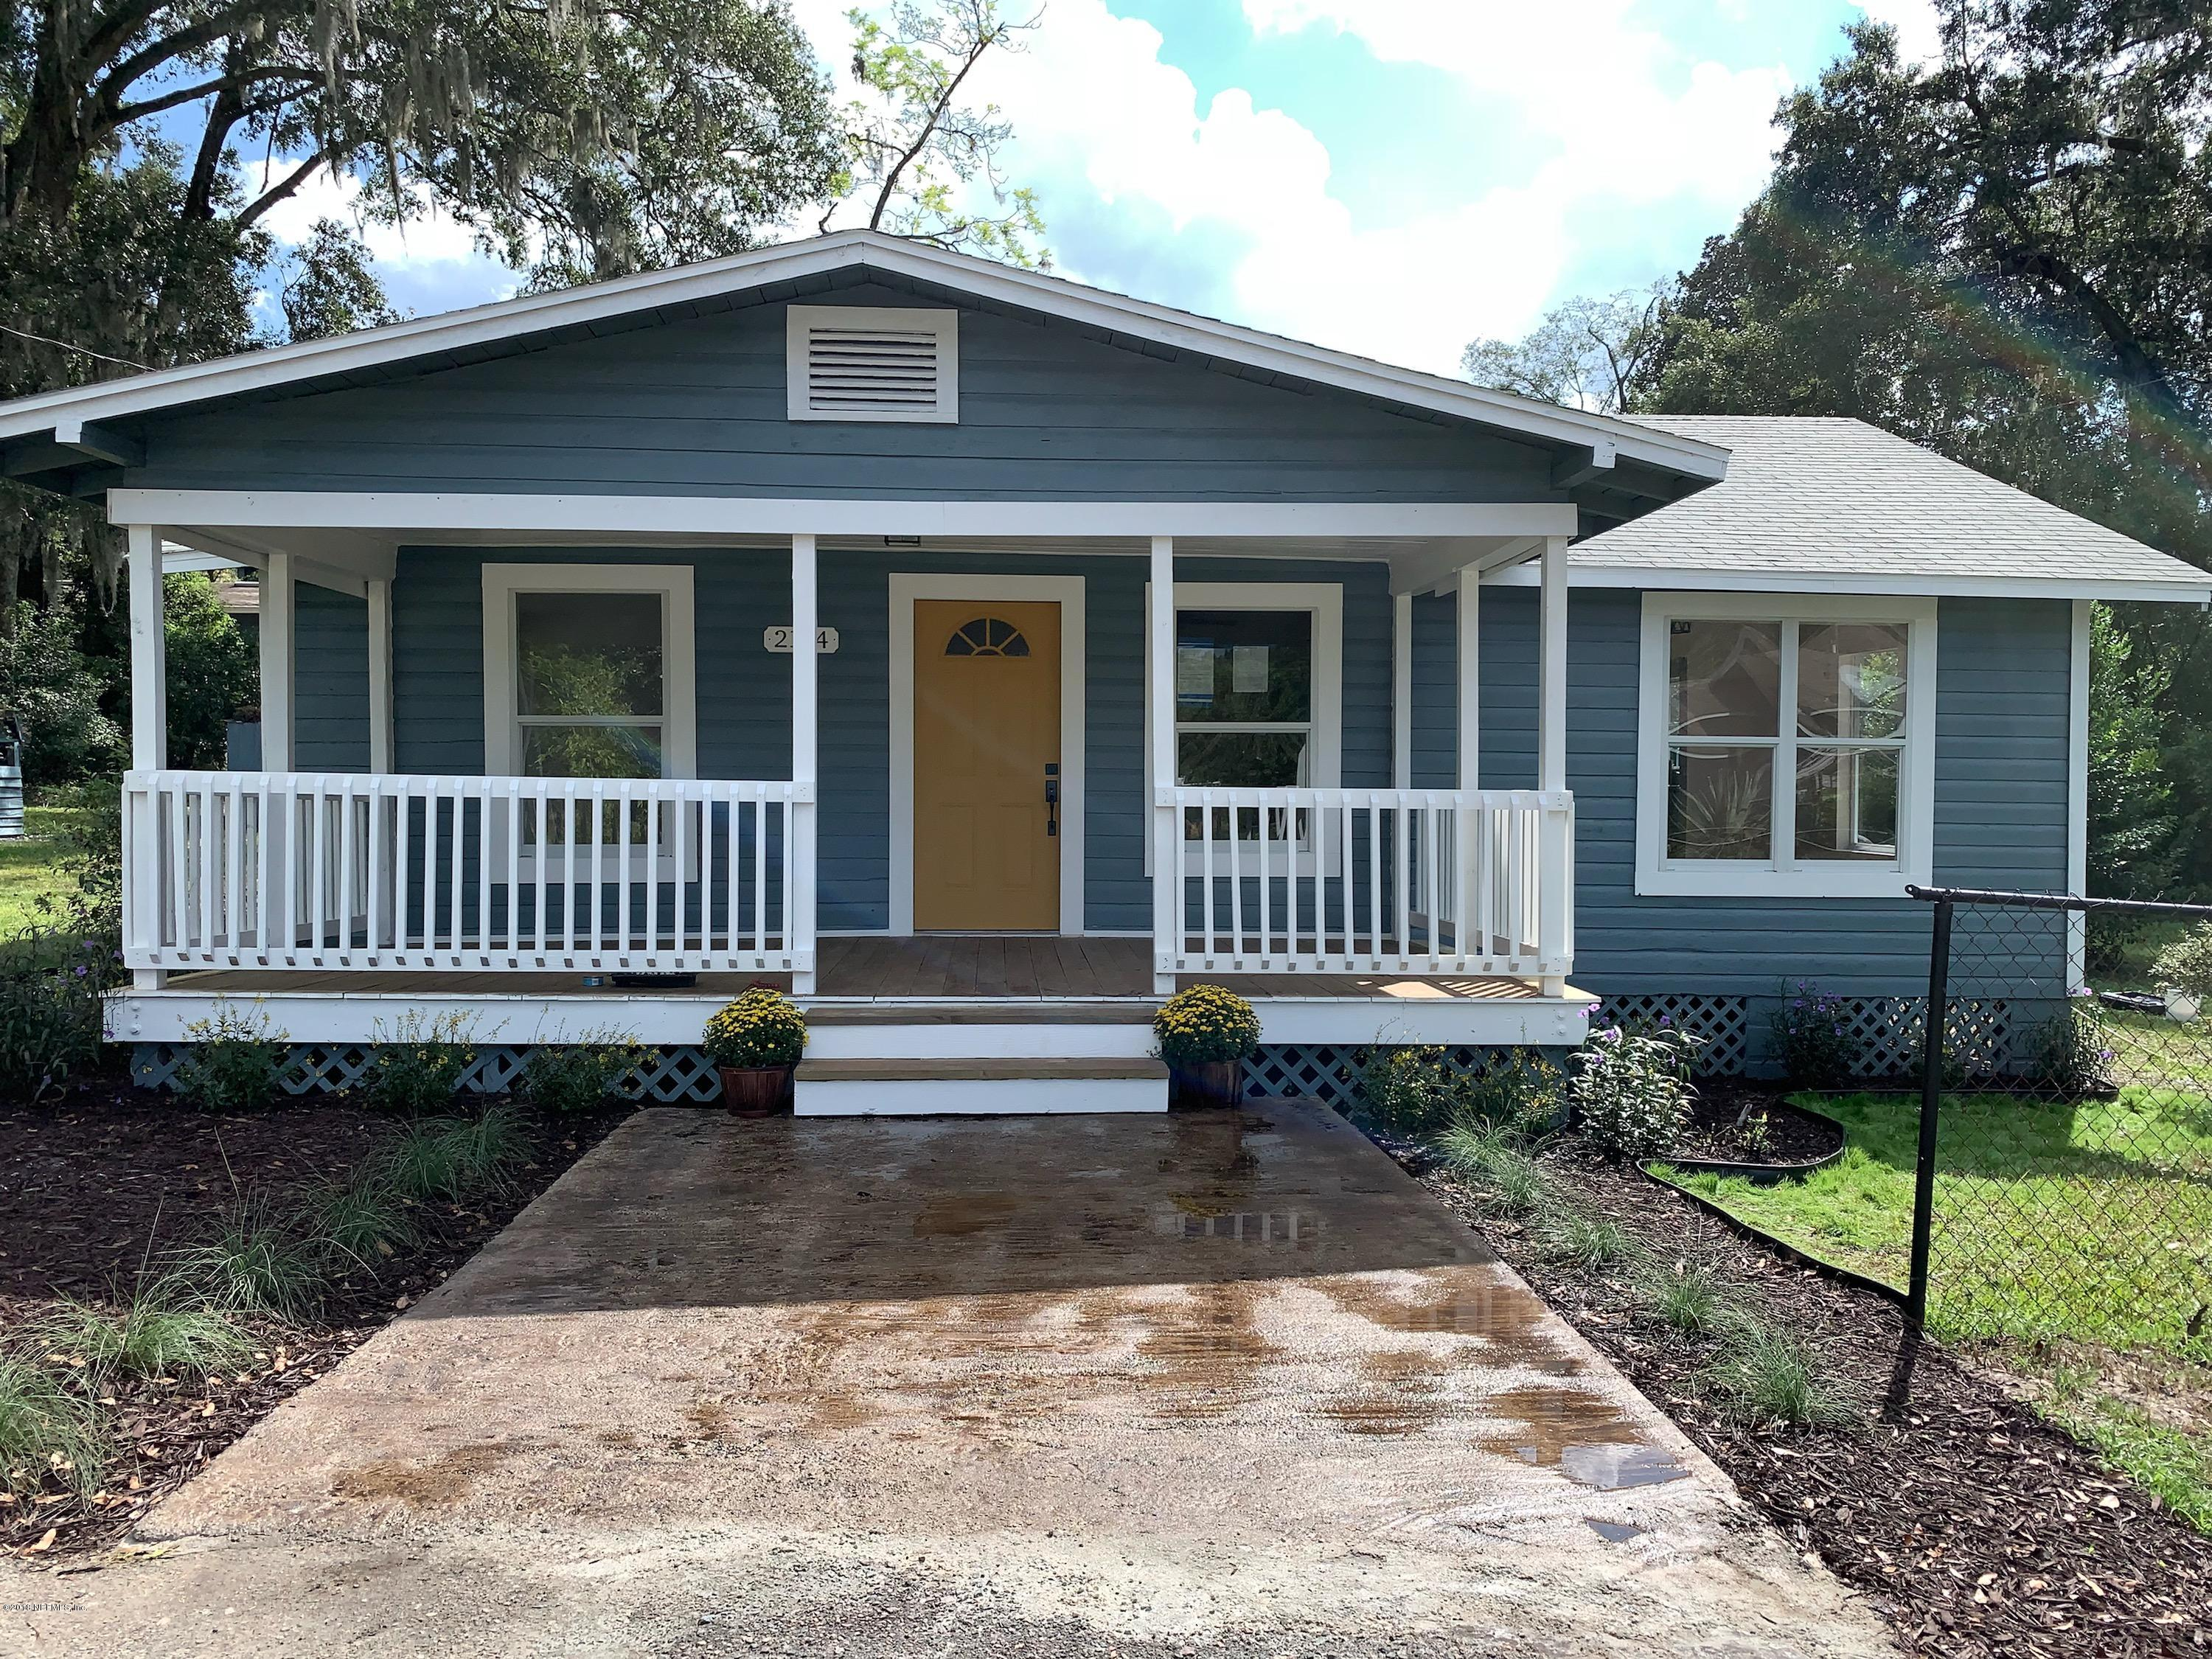 2124 JAYSON, JACKSONVILLE, FLORIDA 32208, 3 Bedrooms Bedrooms, ,1 BathroomBathrooms,Residential - single family,For sale,JAYSON,962260